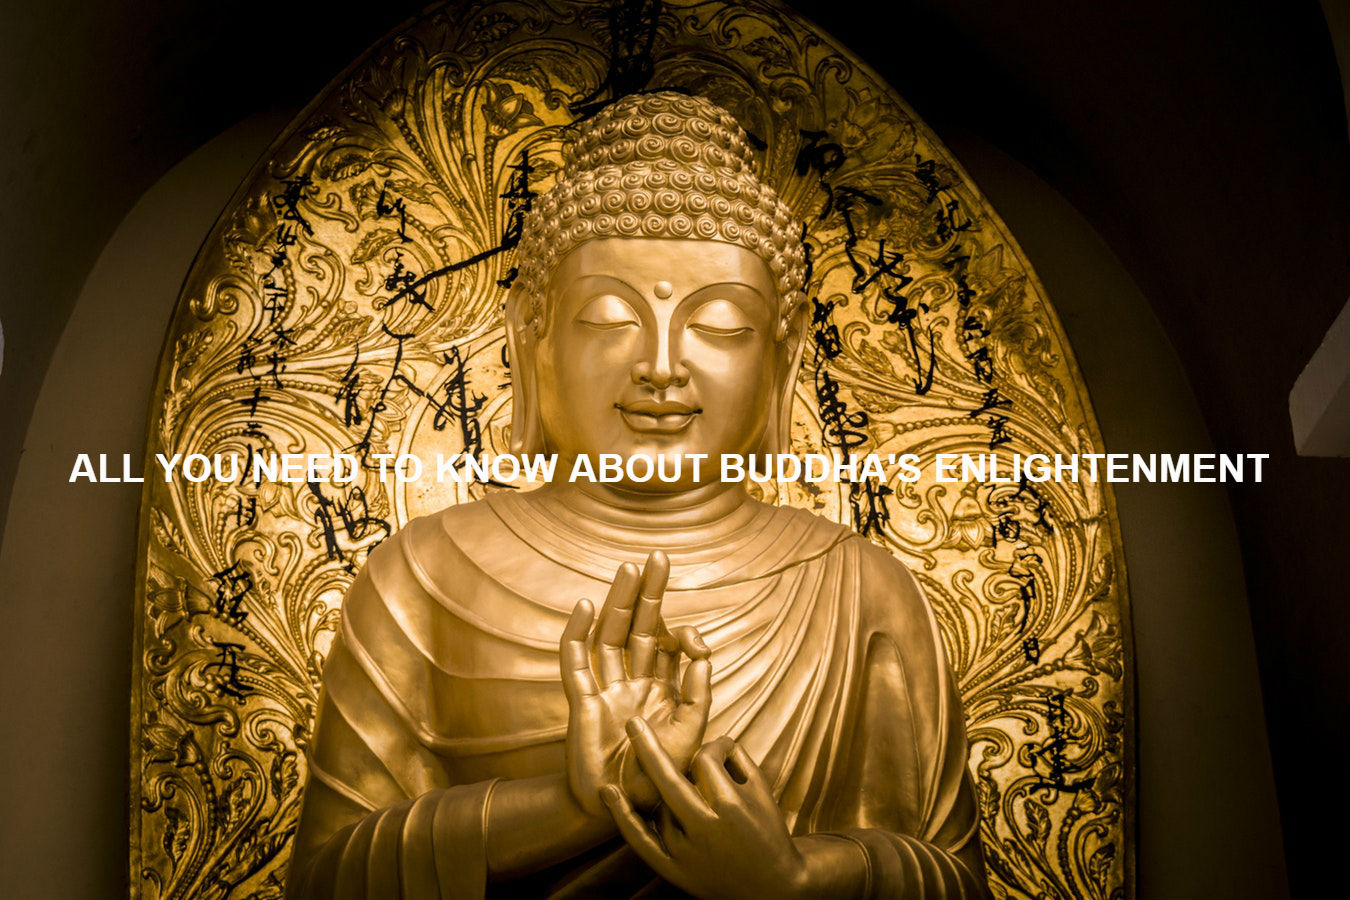 ALL YOU NEED TO KNOW ABOUT BUDDHA'S ENLIGHTENMENT